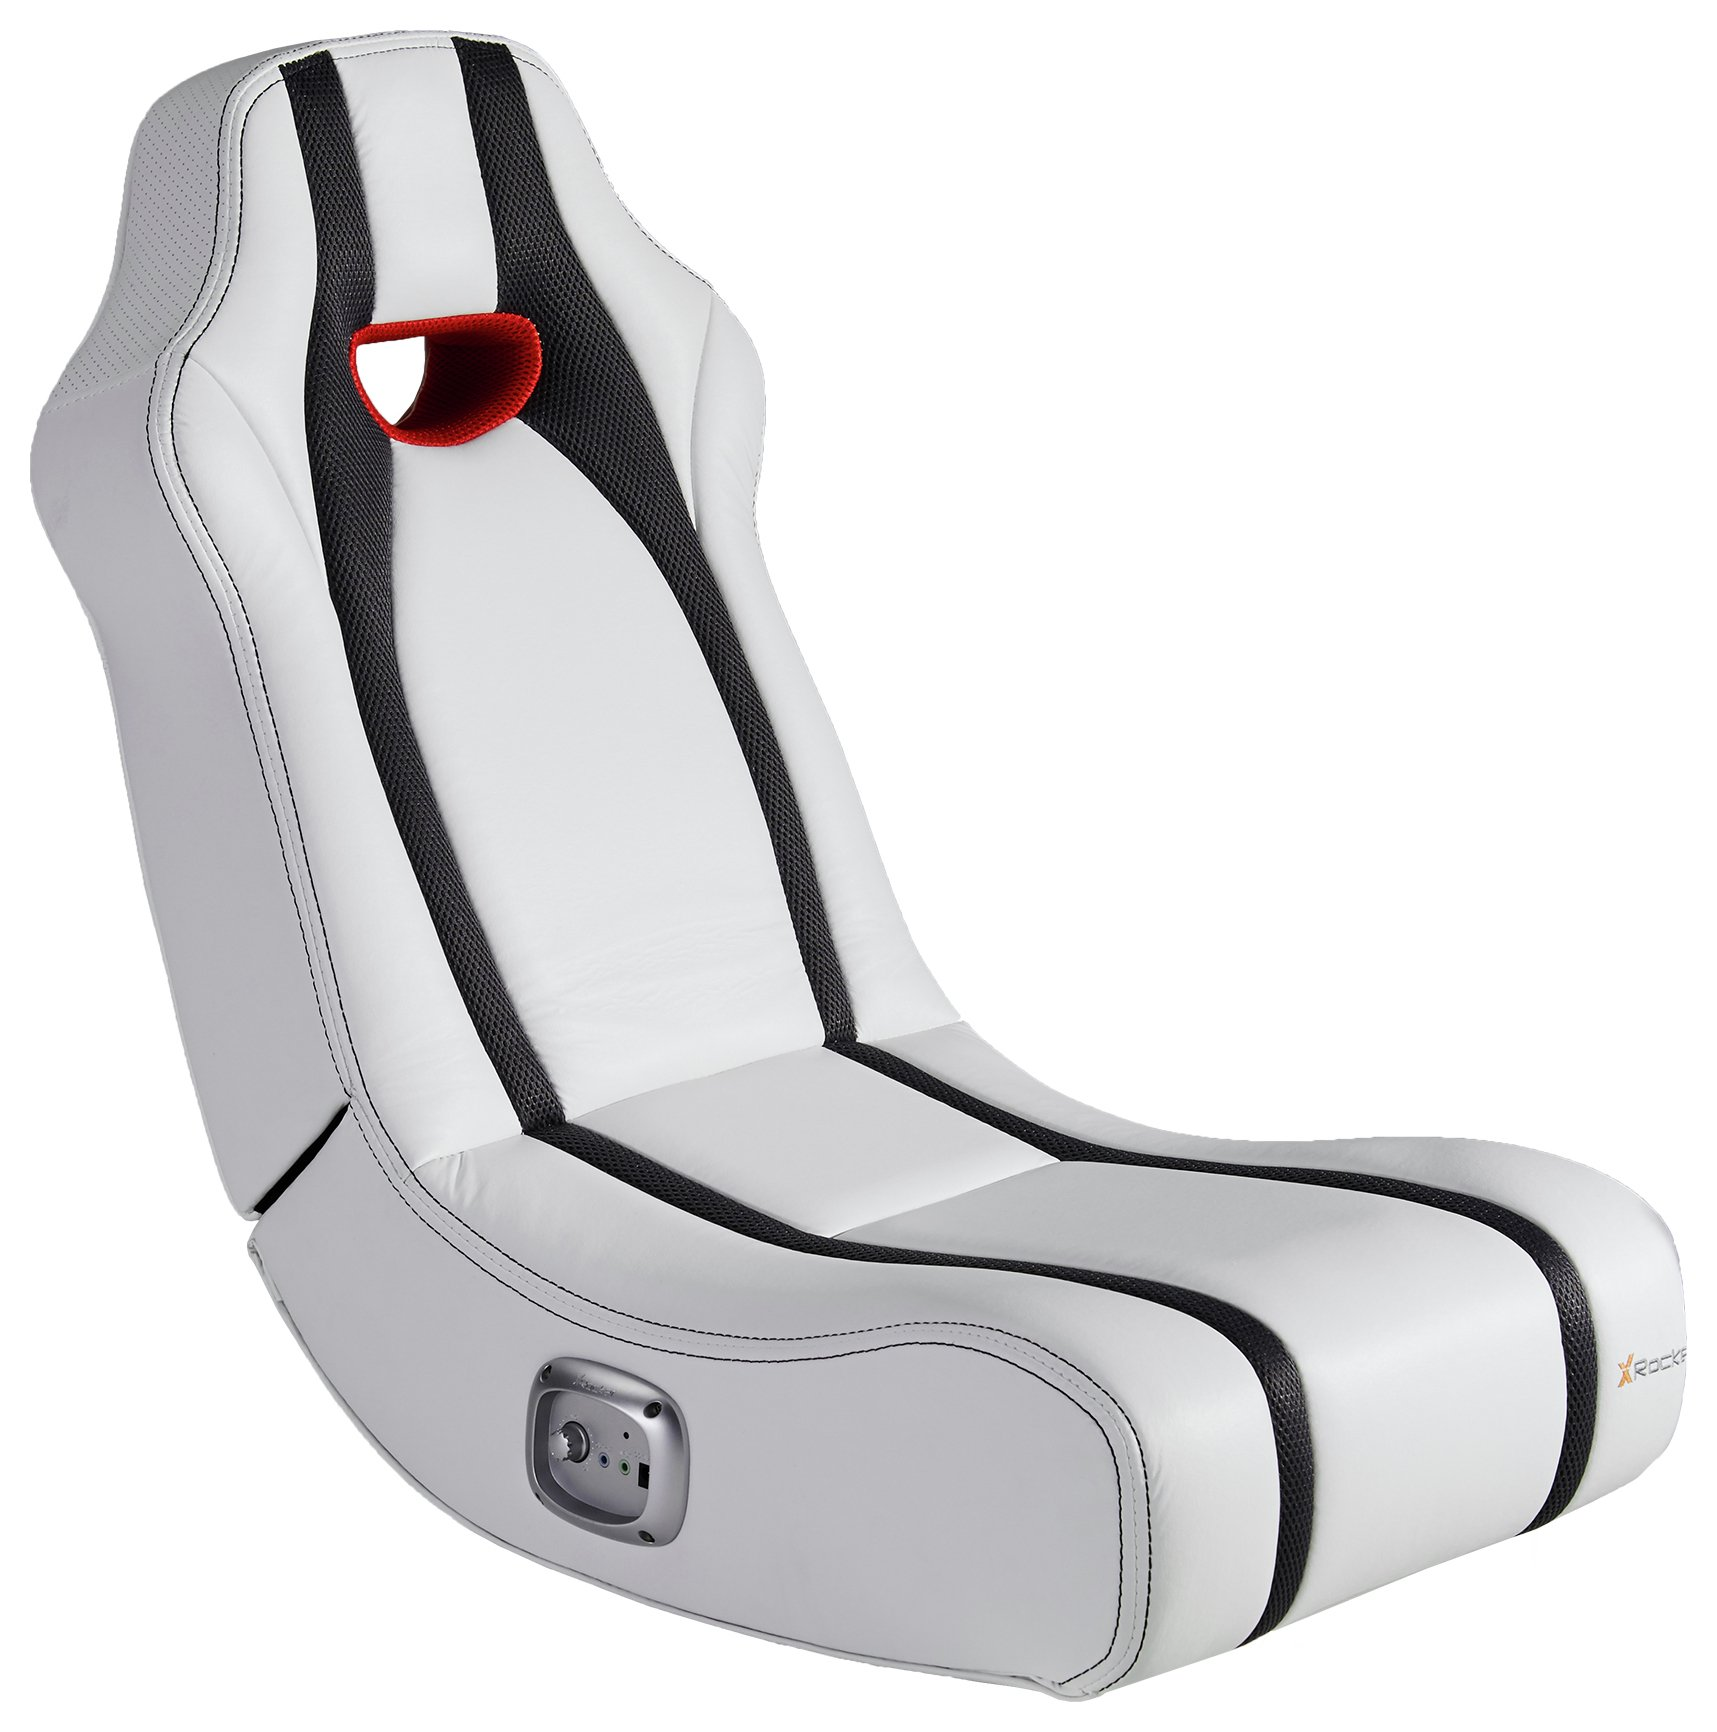 White Gaming Chair X Rocker Spectre White Gaming Chair Ps4 And Xbox One Review